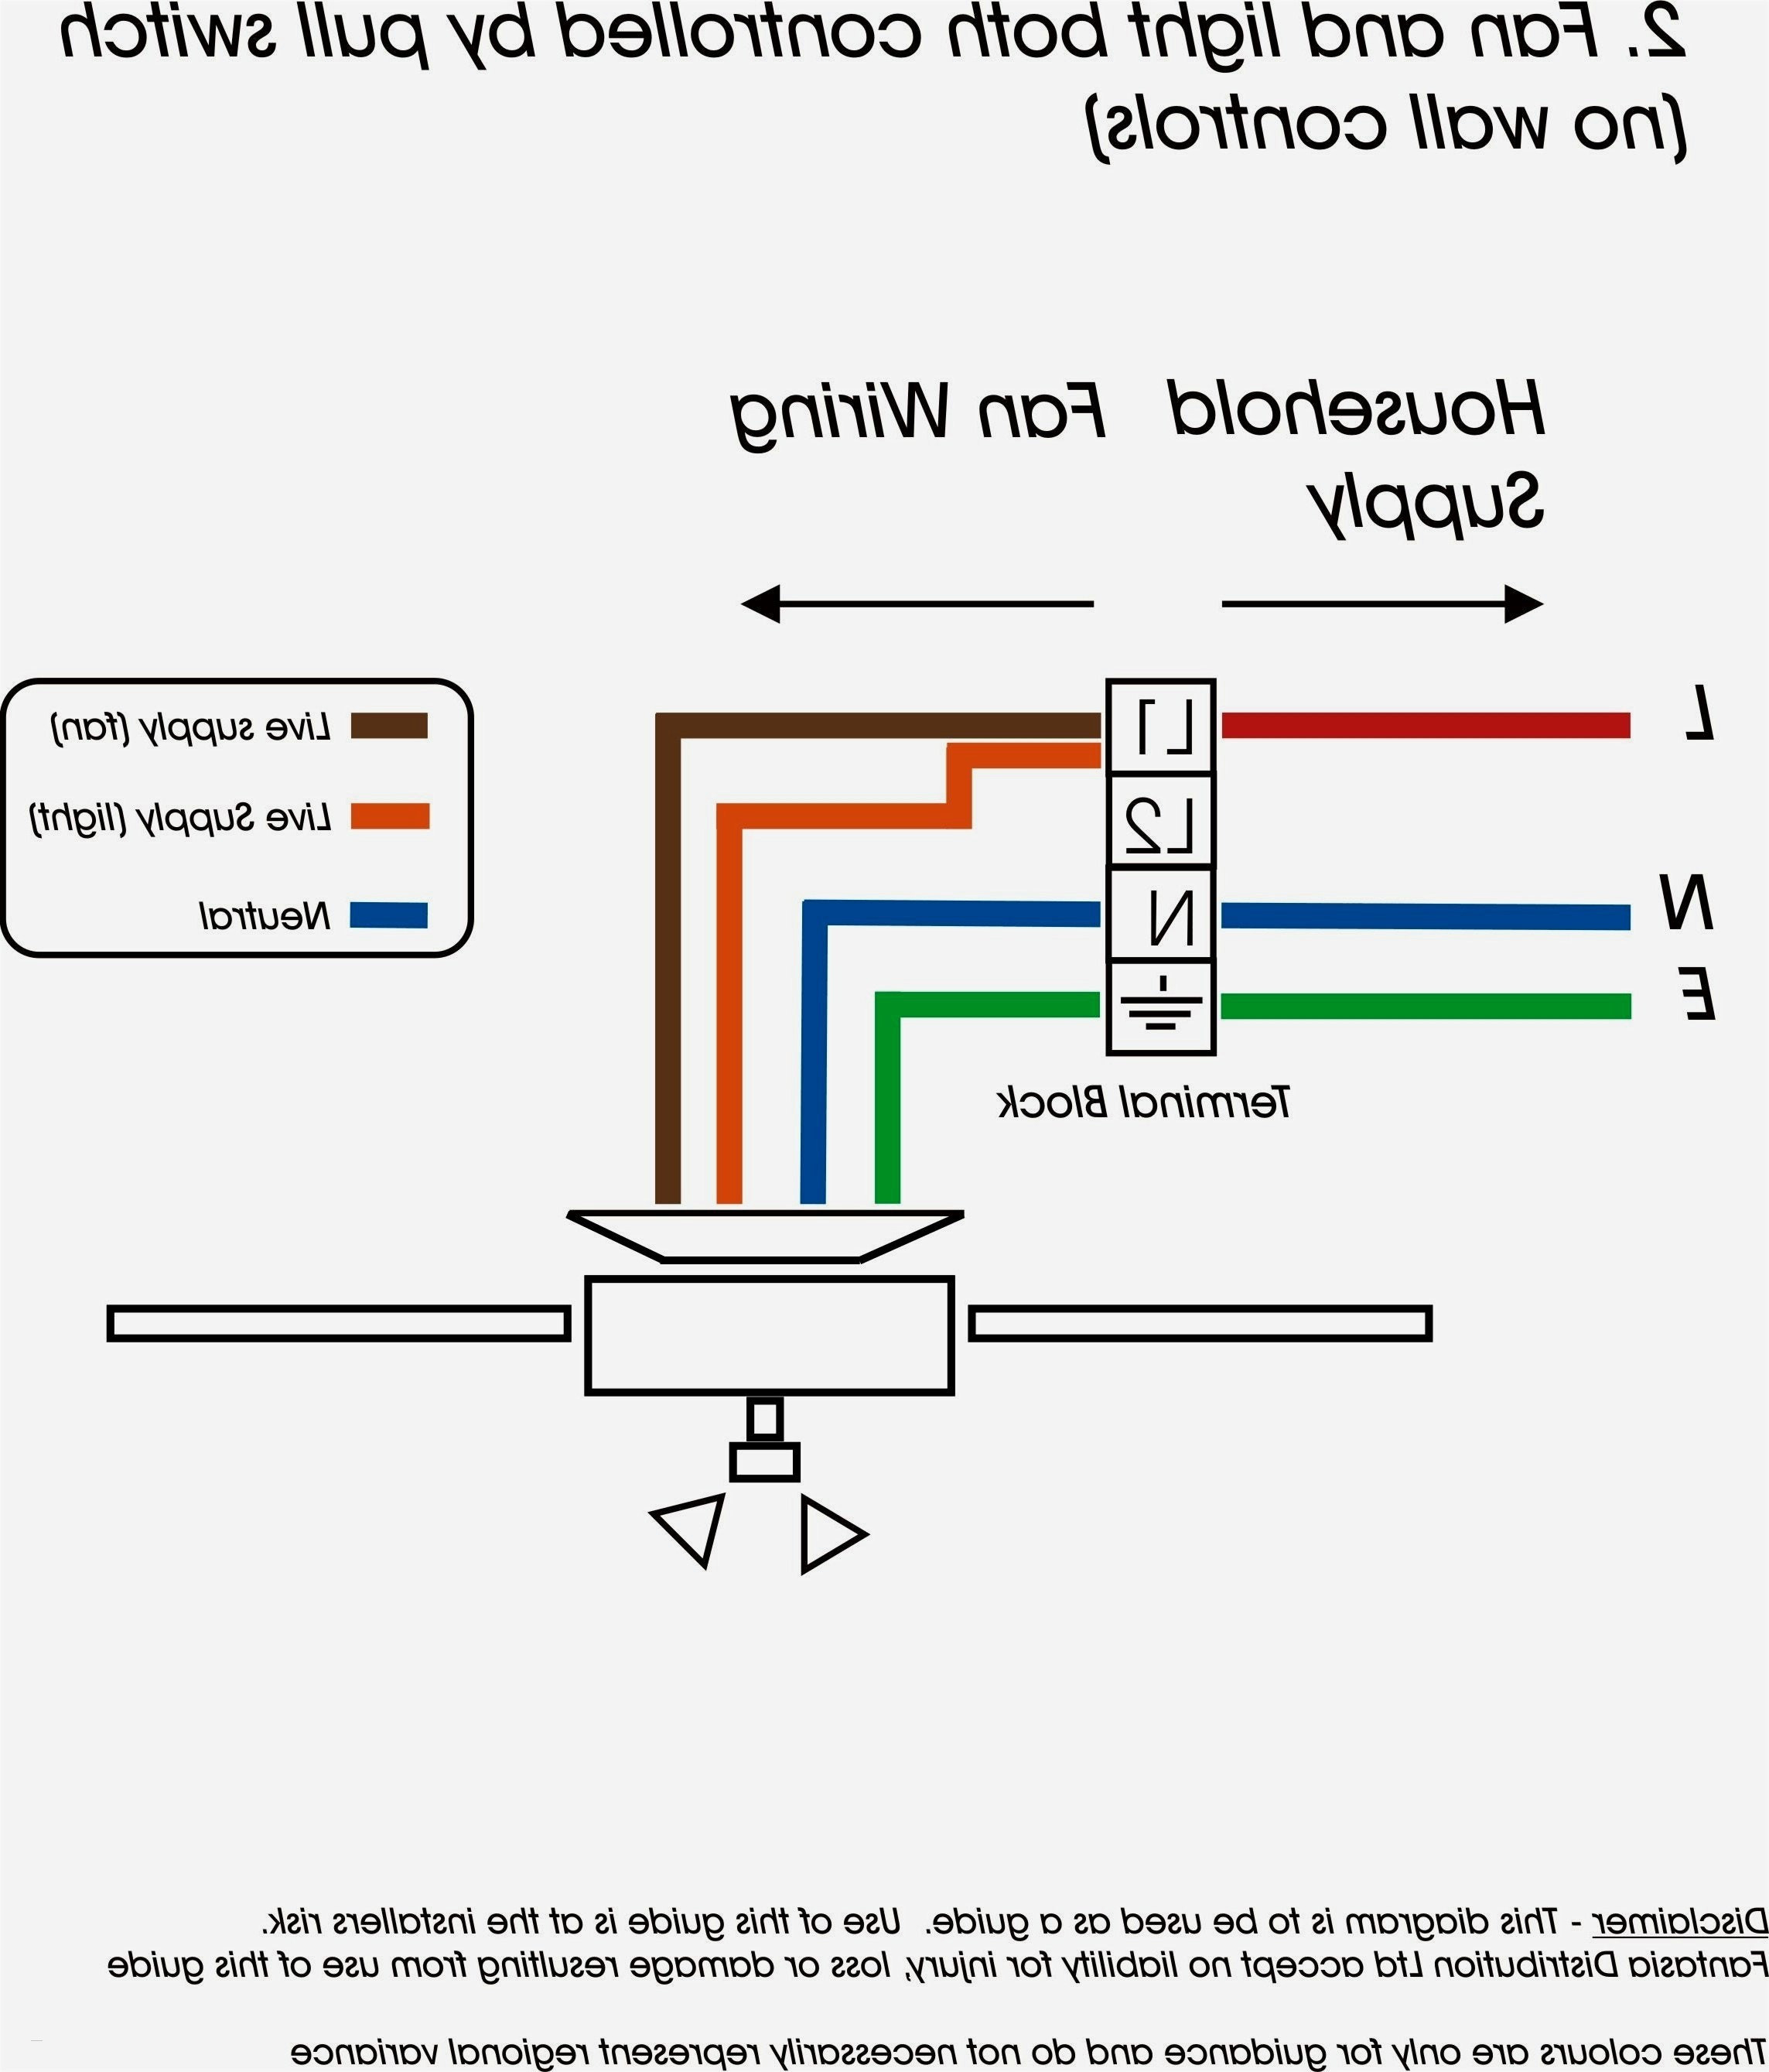 simple light switch wiring diagram Collection-Arco Alternator Wiring Diagram New Wiring Diagram For Standard Light Switch & Wiring A Basic Light 6-a